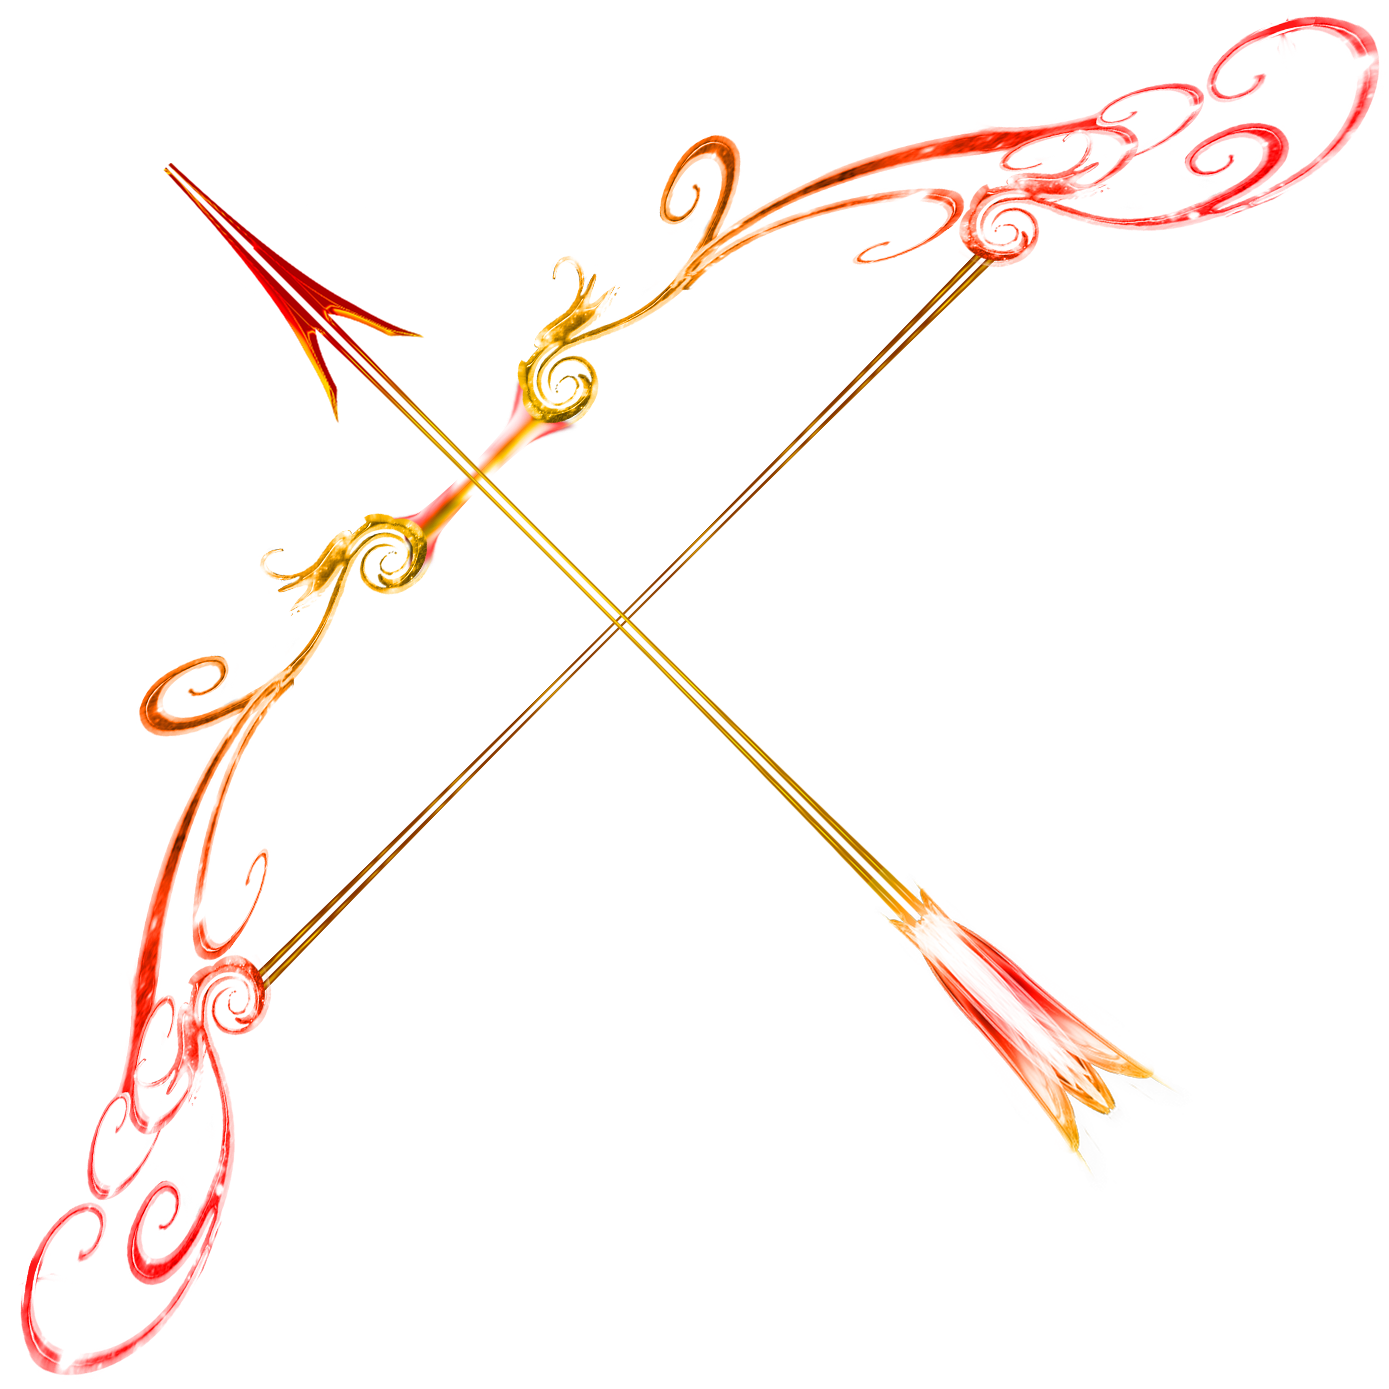 Would like this as. Clipart bow bow arrow